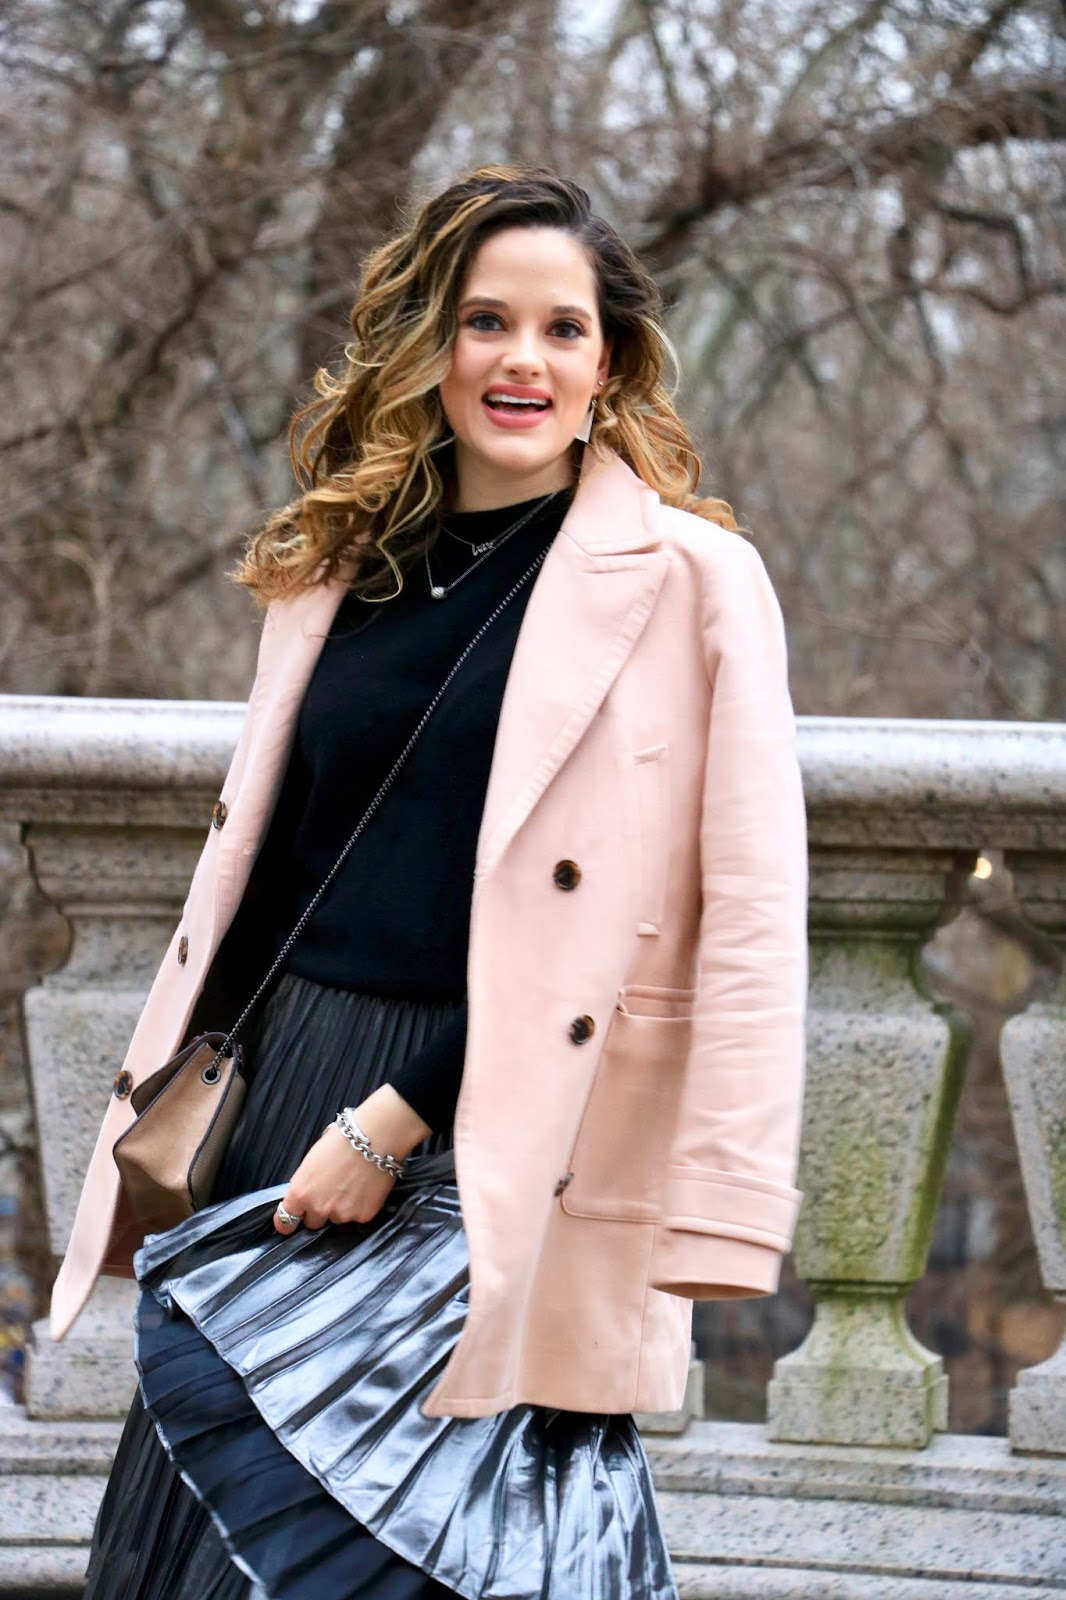 Nyc fashion blogger Kathleen Harper wearing a blush peacoat outfit